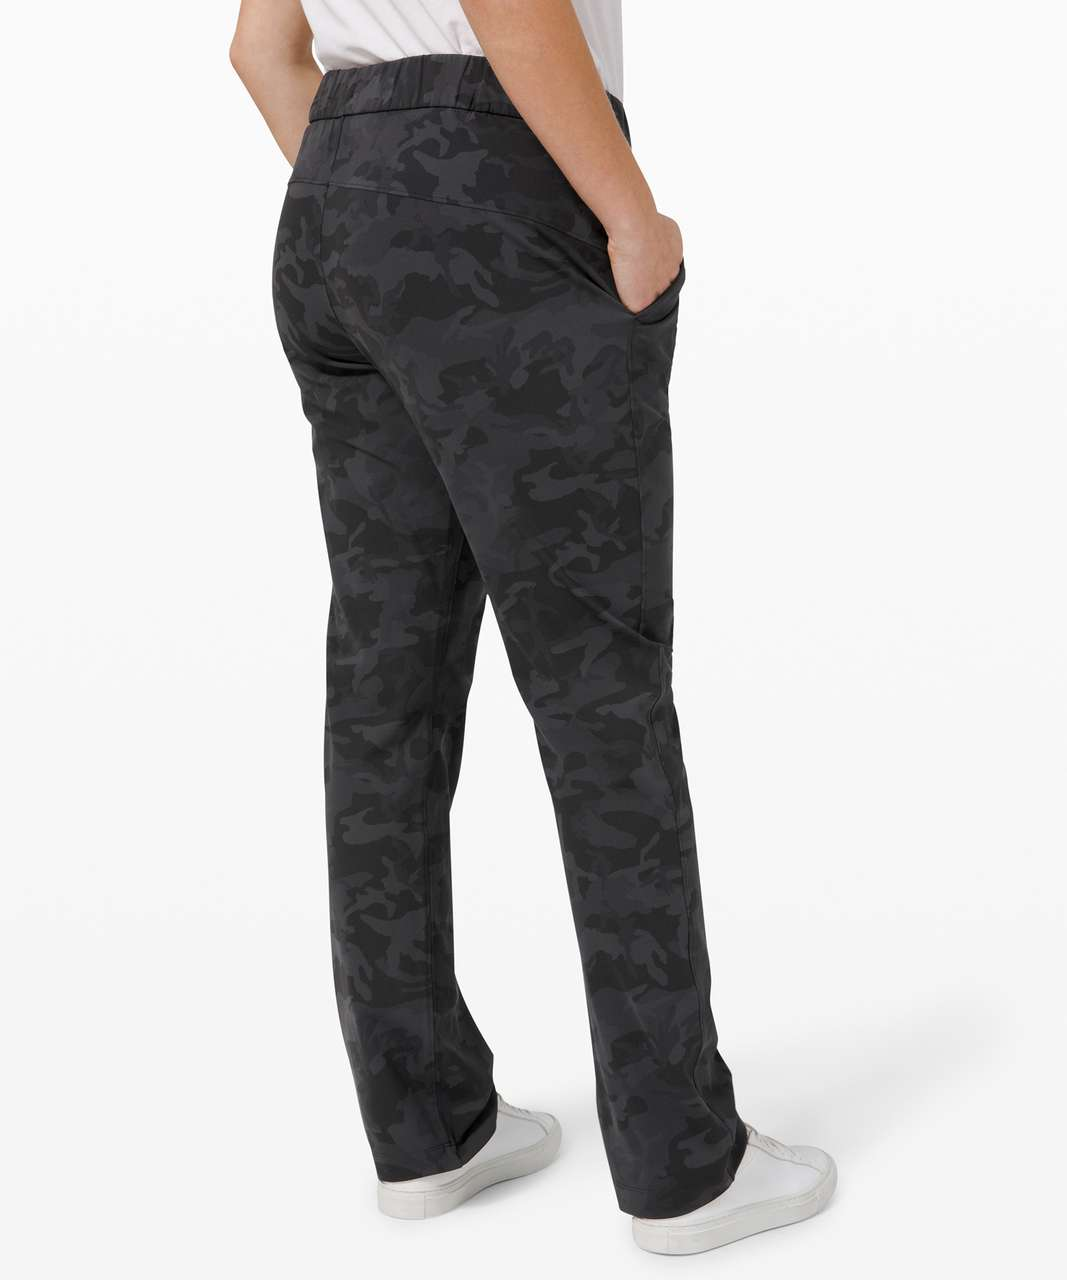 Lululemon On the Fly Pant Full Length - Incognito Camo Multi Grey